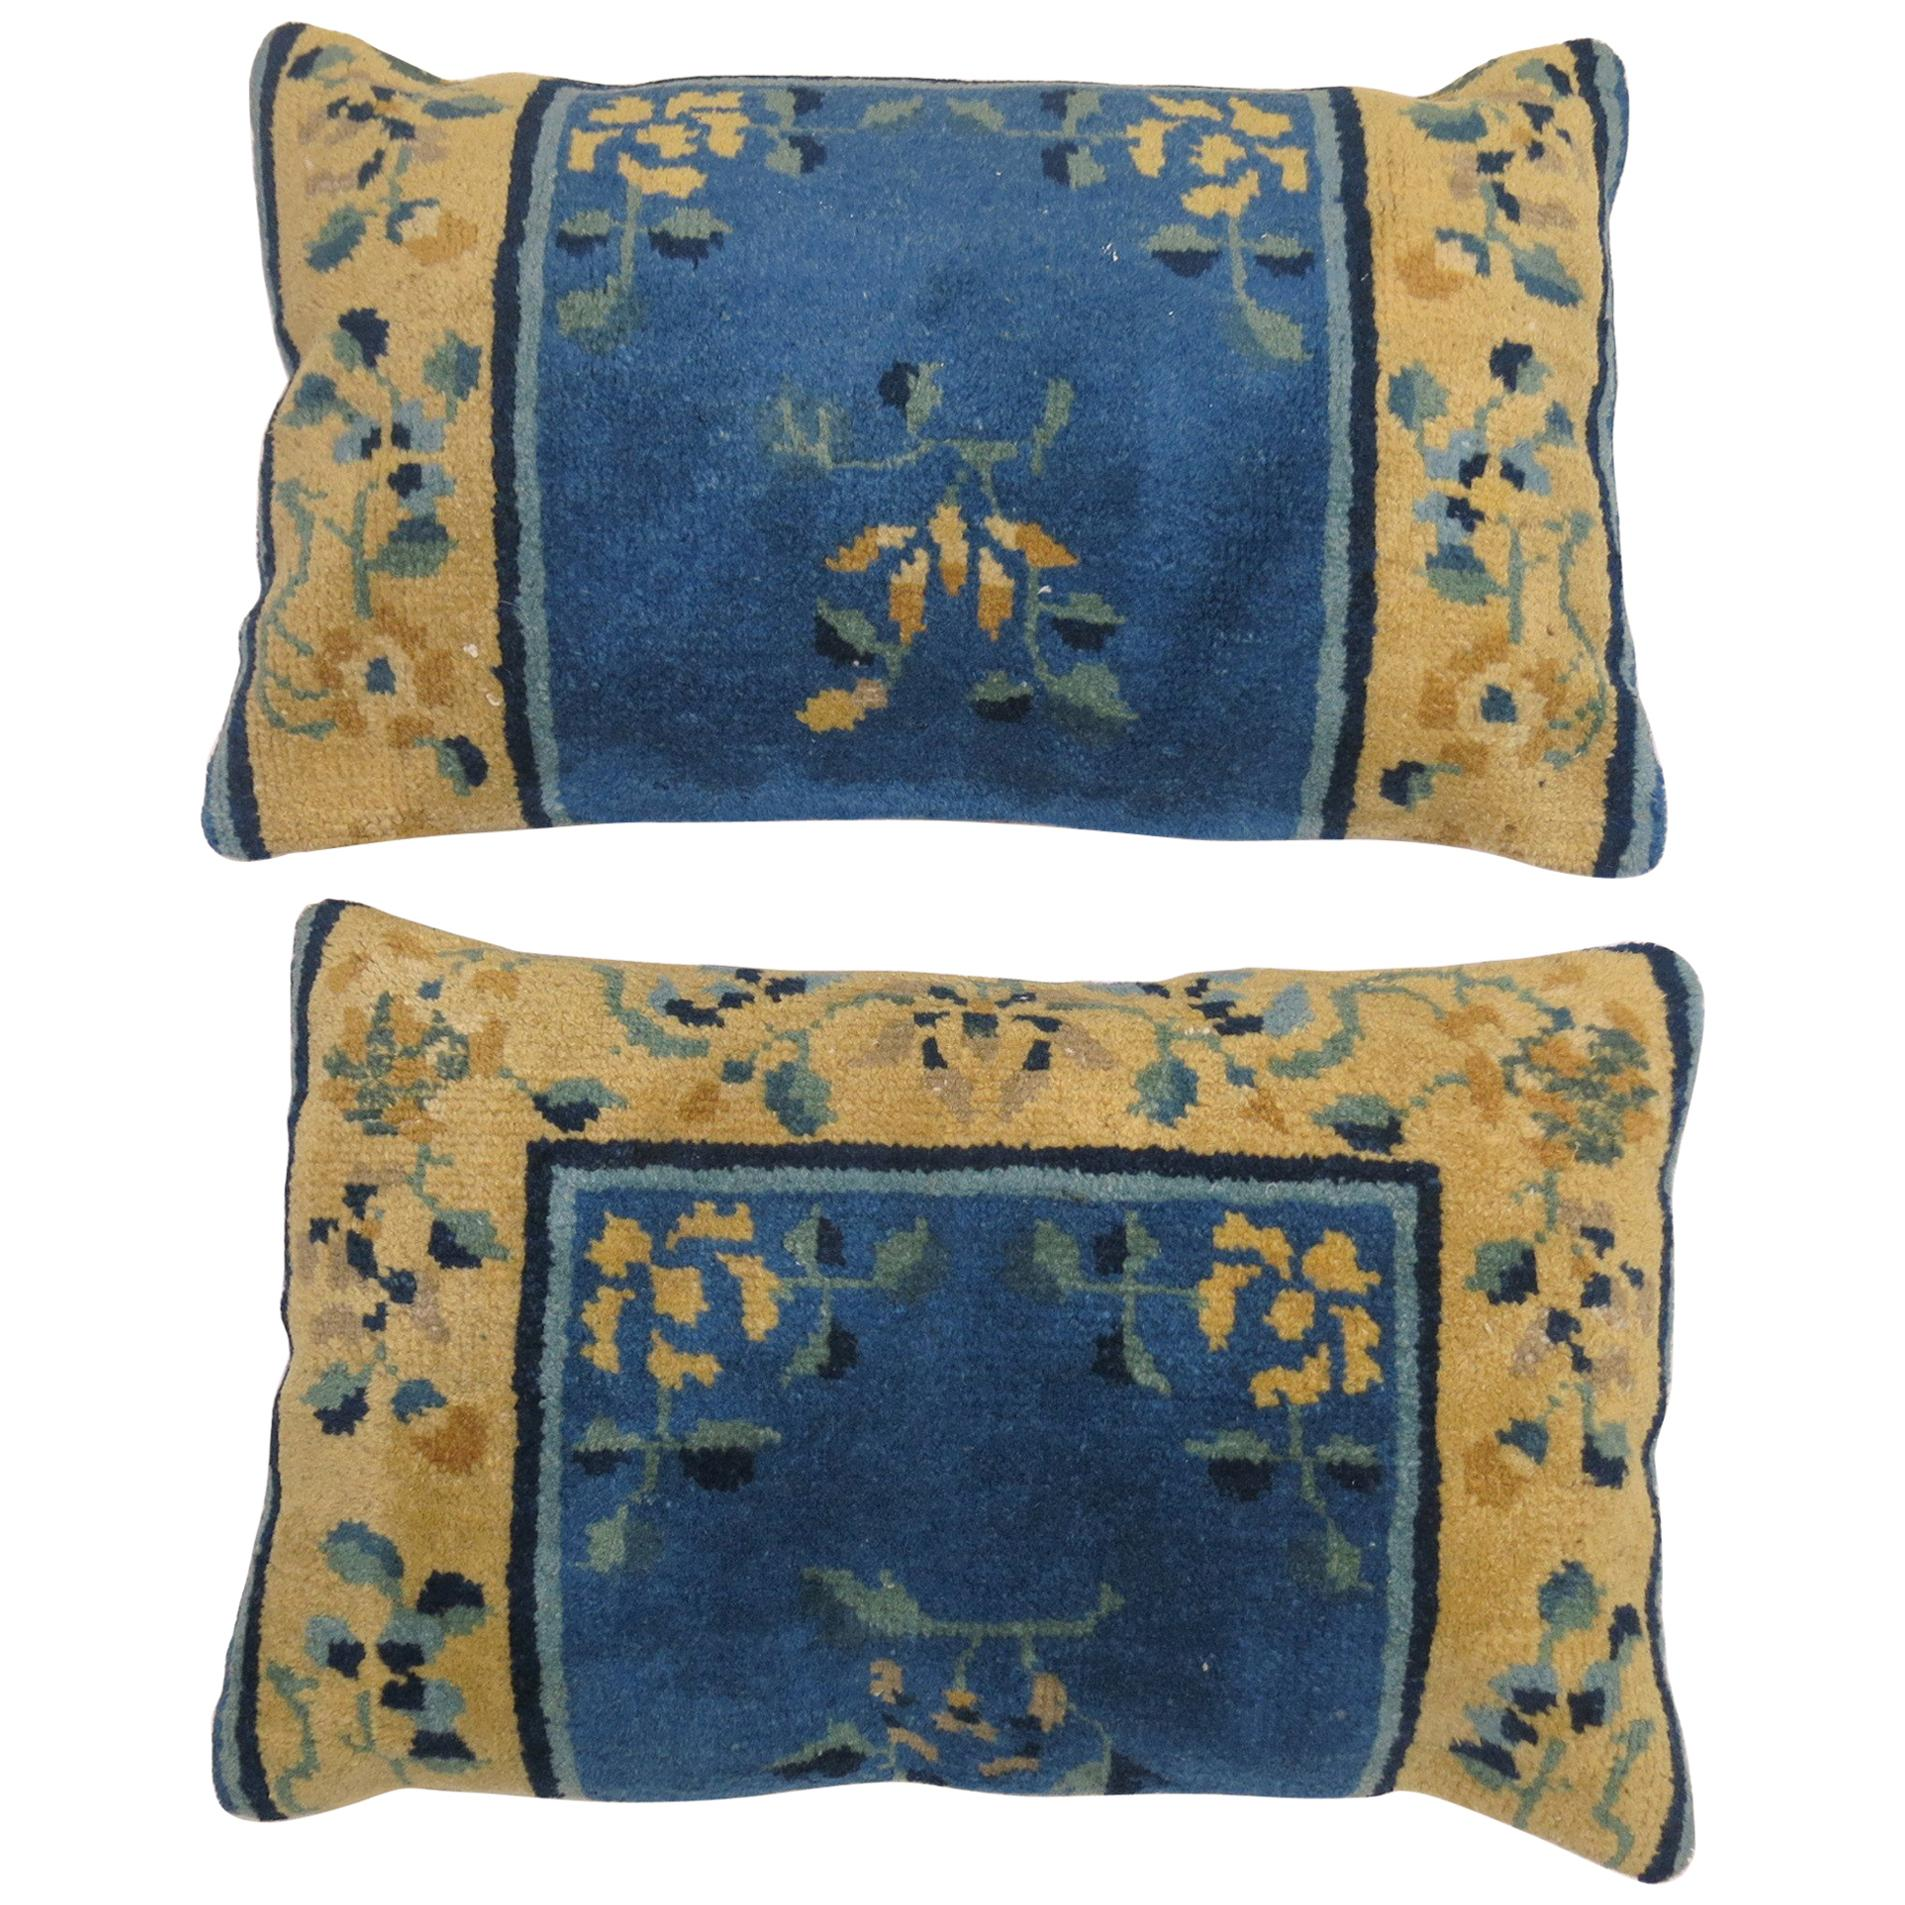 Pair of Chinese Blue and Gold Wool 20th Century Rug Pillows